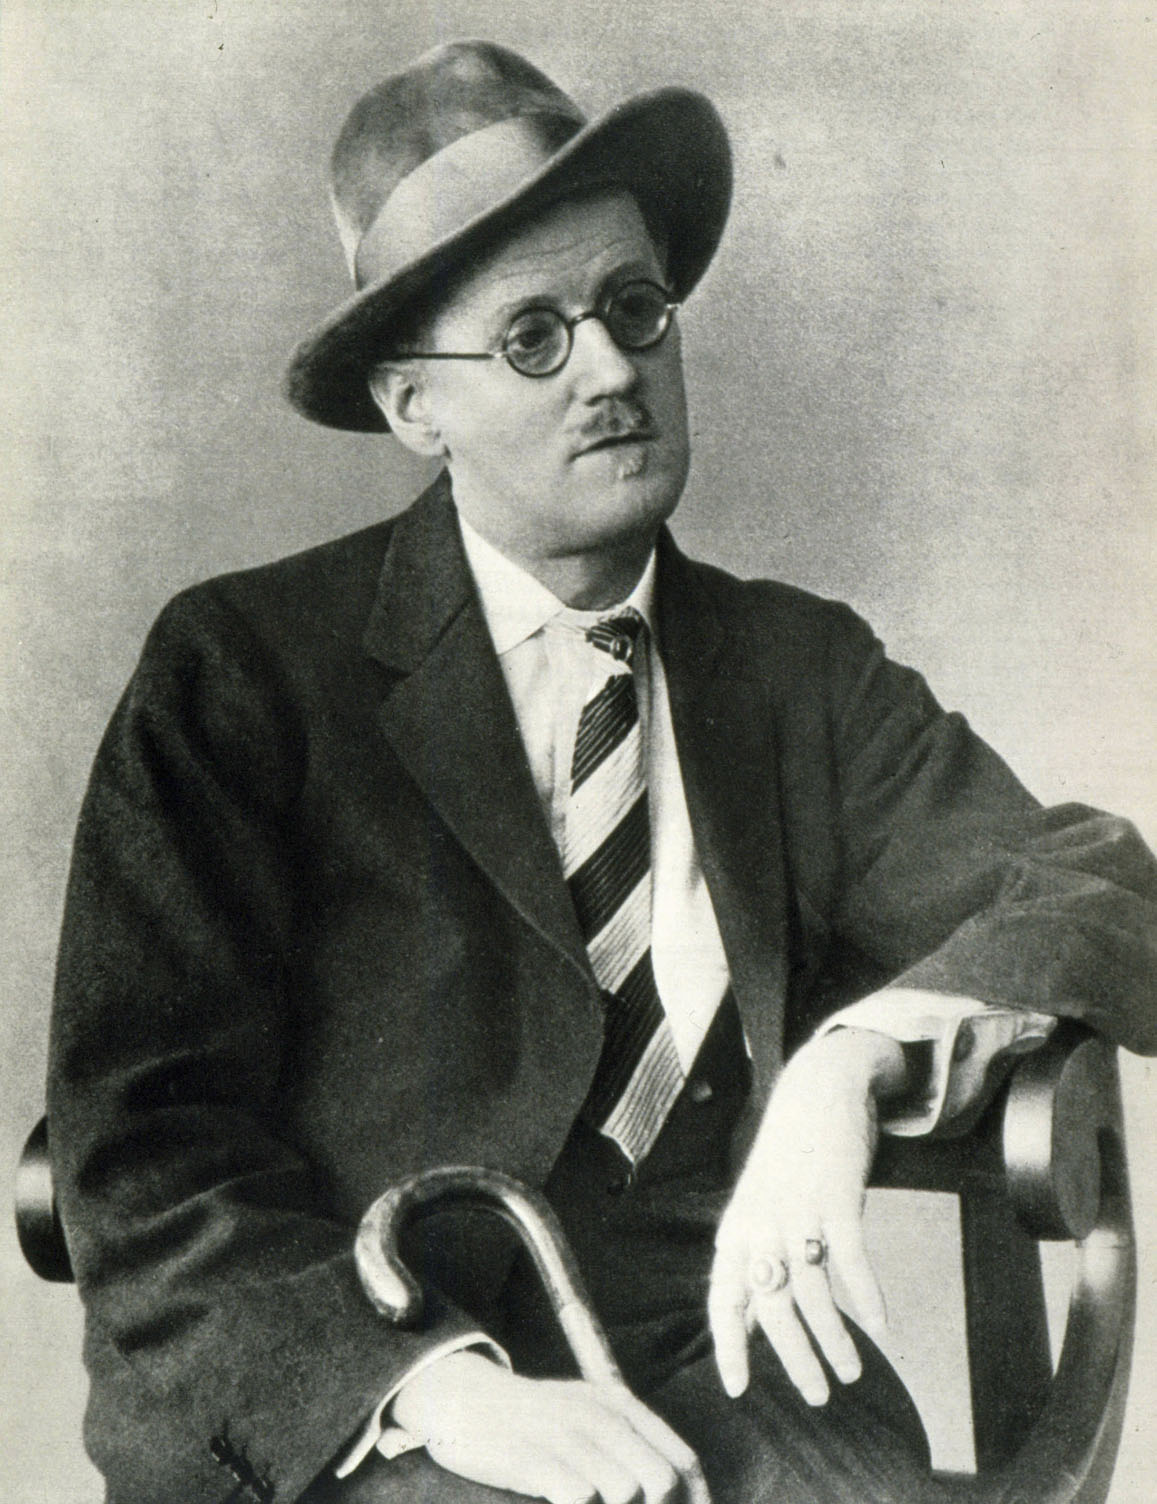 James Joyce was one of the masters of short fiction.